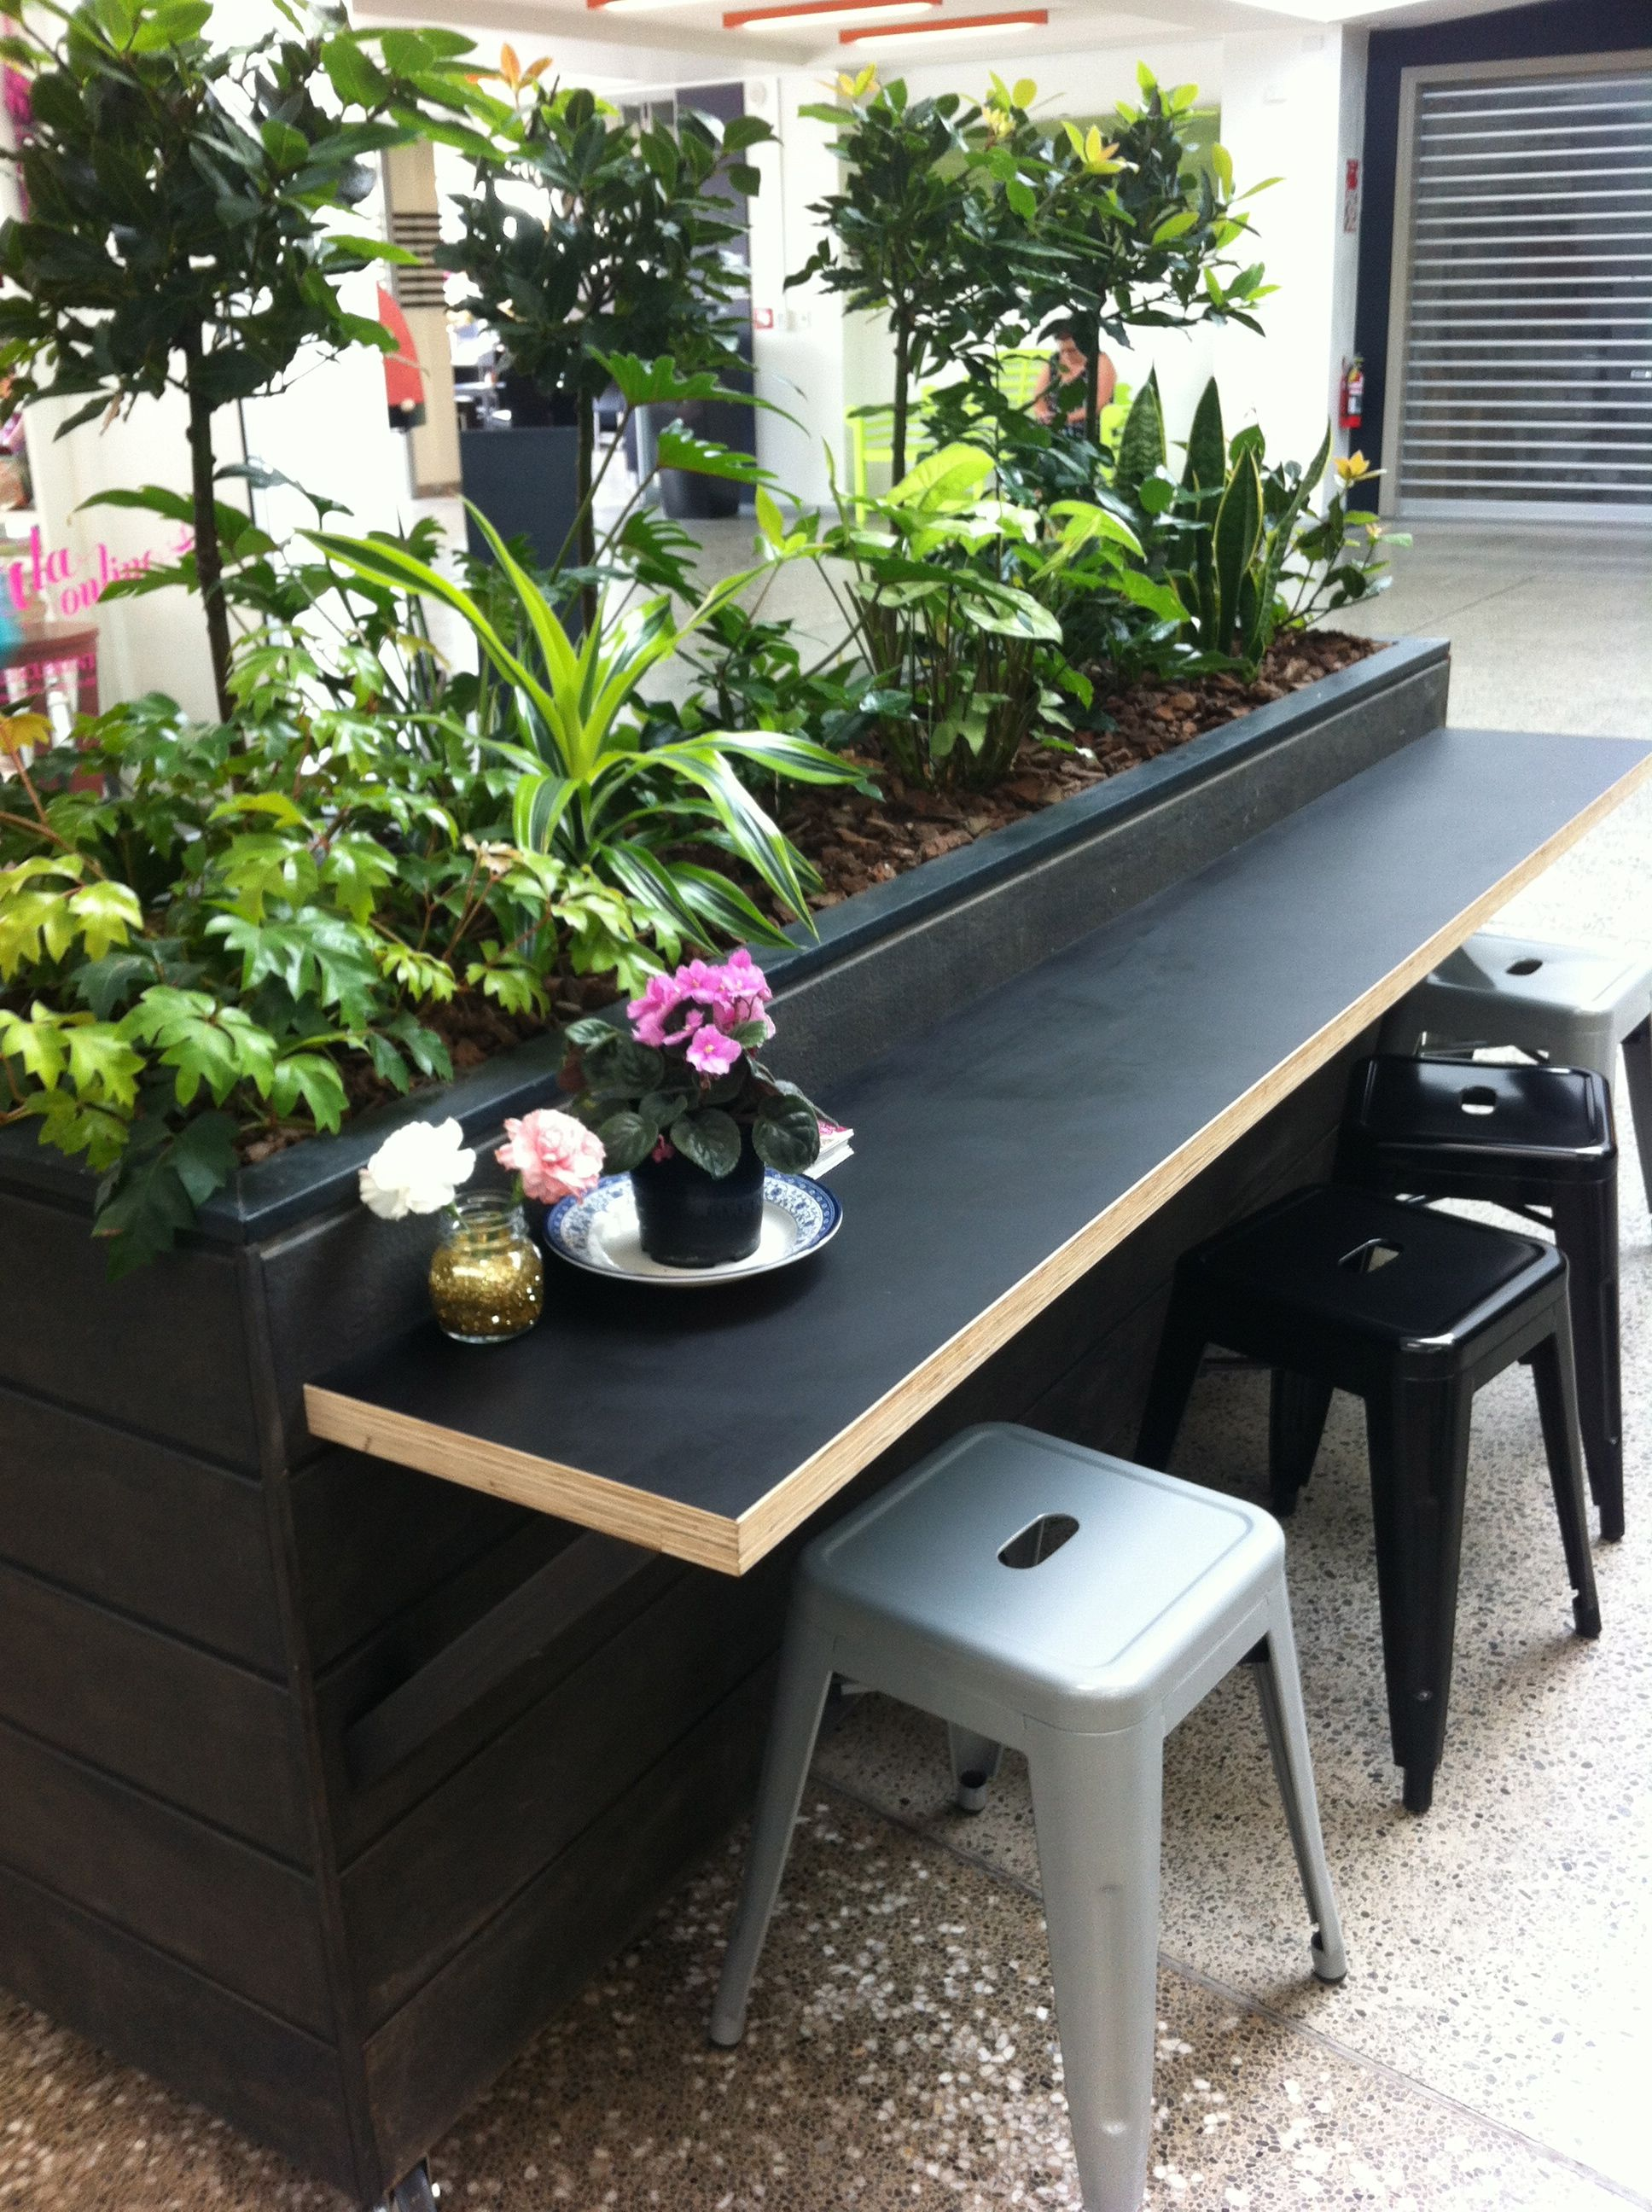 Planter Box With Counter Space Planter Boxes Meeting Room Planters